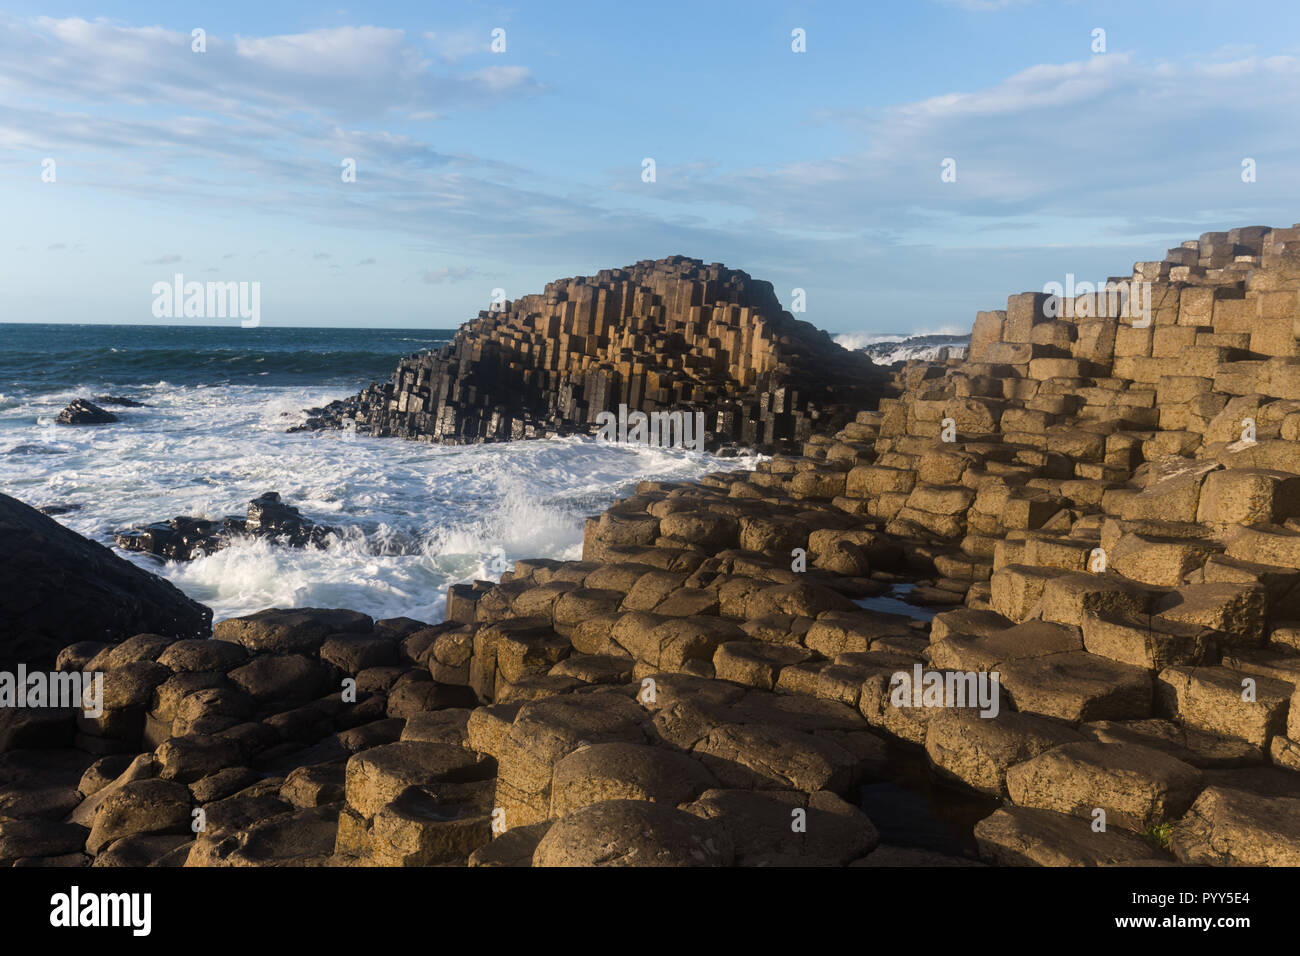 Bright sunny afternoon at Northern Ireland's top attraction, The Giant's Causeway, with thousands of basalt hexagonal columns. Giants Causeway, County - Stock Image